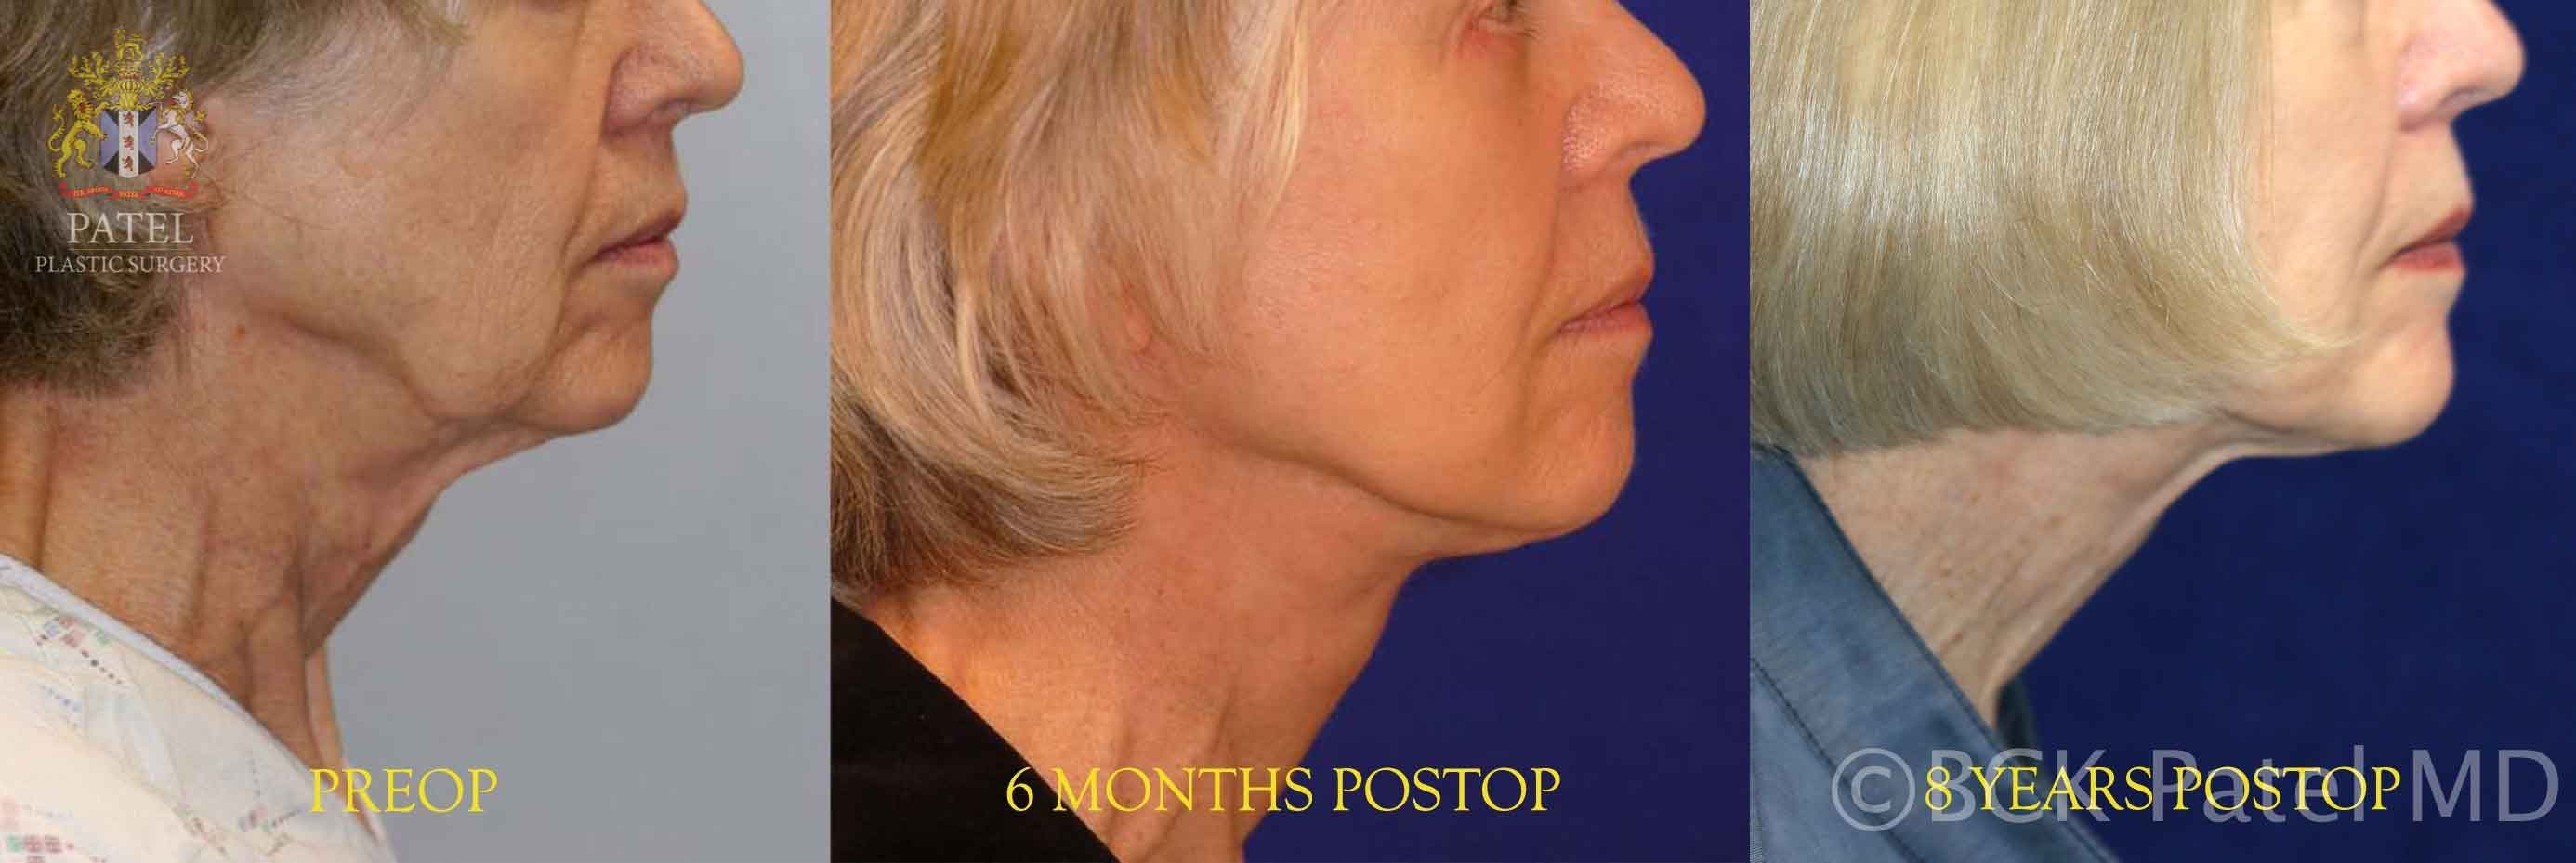 Bhupendra C. K. Patel MD results of facelift in a lady with long term results illustrated Patel Plastic Surgery